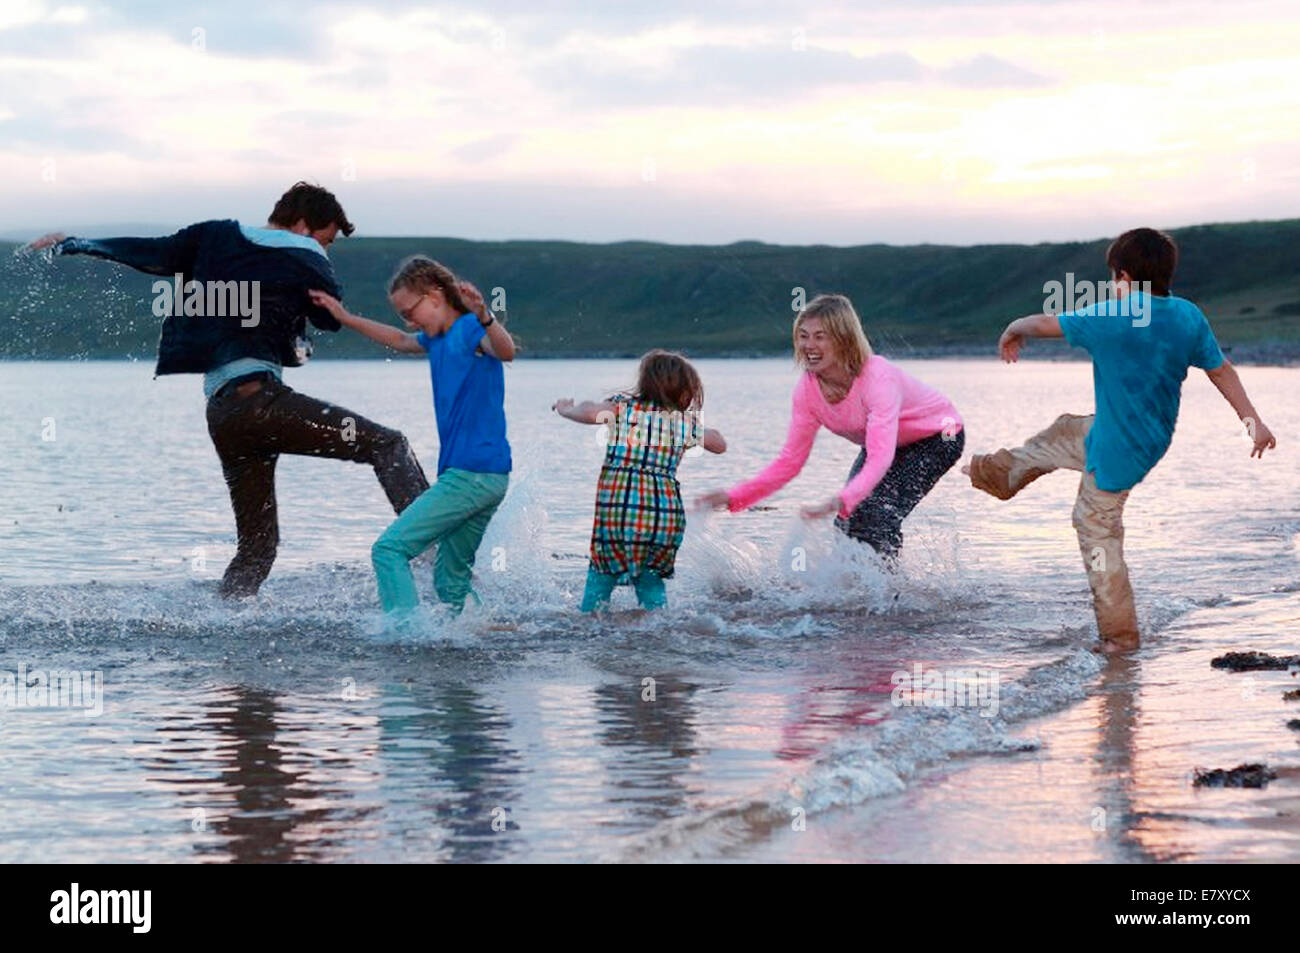 WHAT WE DID ON OUR HOLIDAY 2014 BBC Films production  with Rosamund Pike and David Tennant - Stock Image